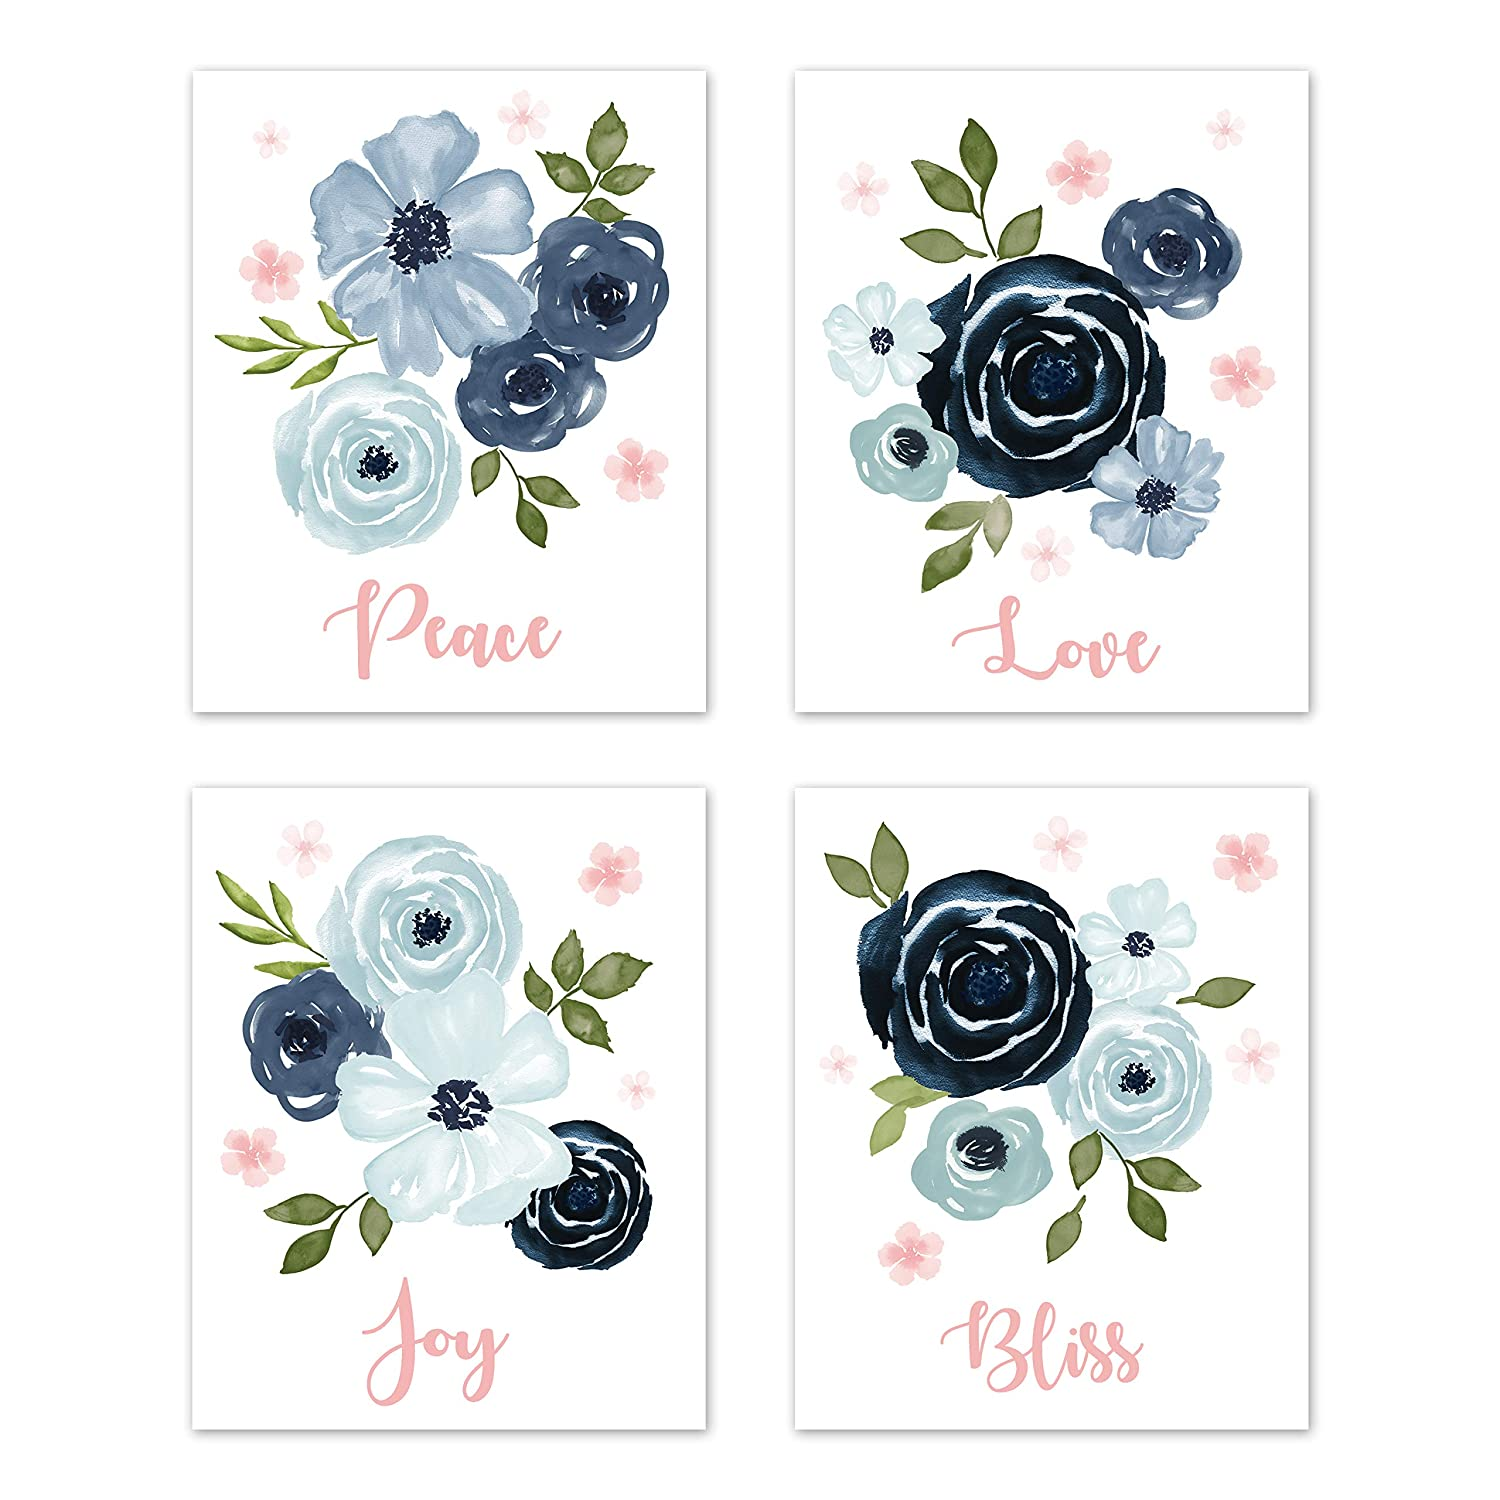 Sweet Jojo Designs Navy Blue and Pink Watercolor Floral Wall Art Prints Room Decor for Baby, Nursery, and Kids - Set of 4 - Blush, Green and White Shabby Chic Rose Flower Peace, Love, Joy Bliss